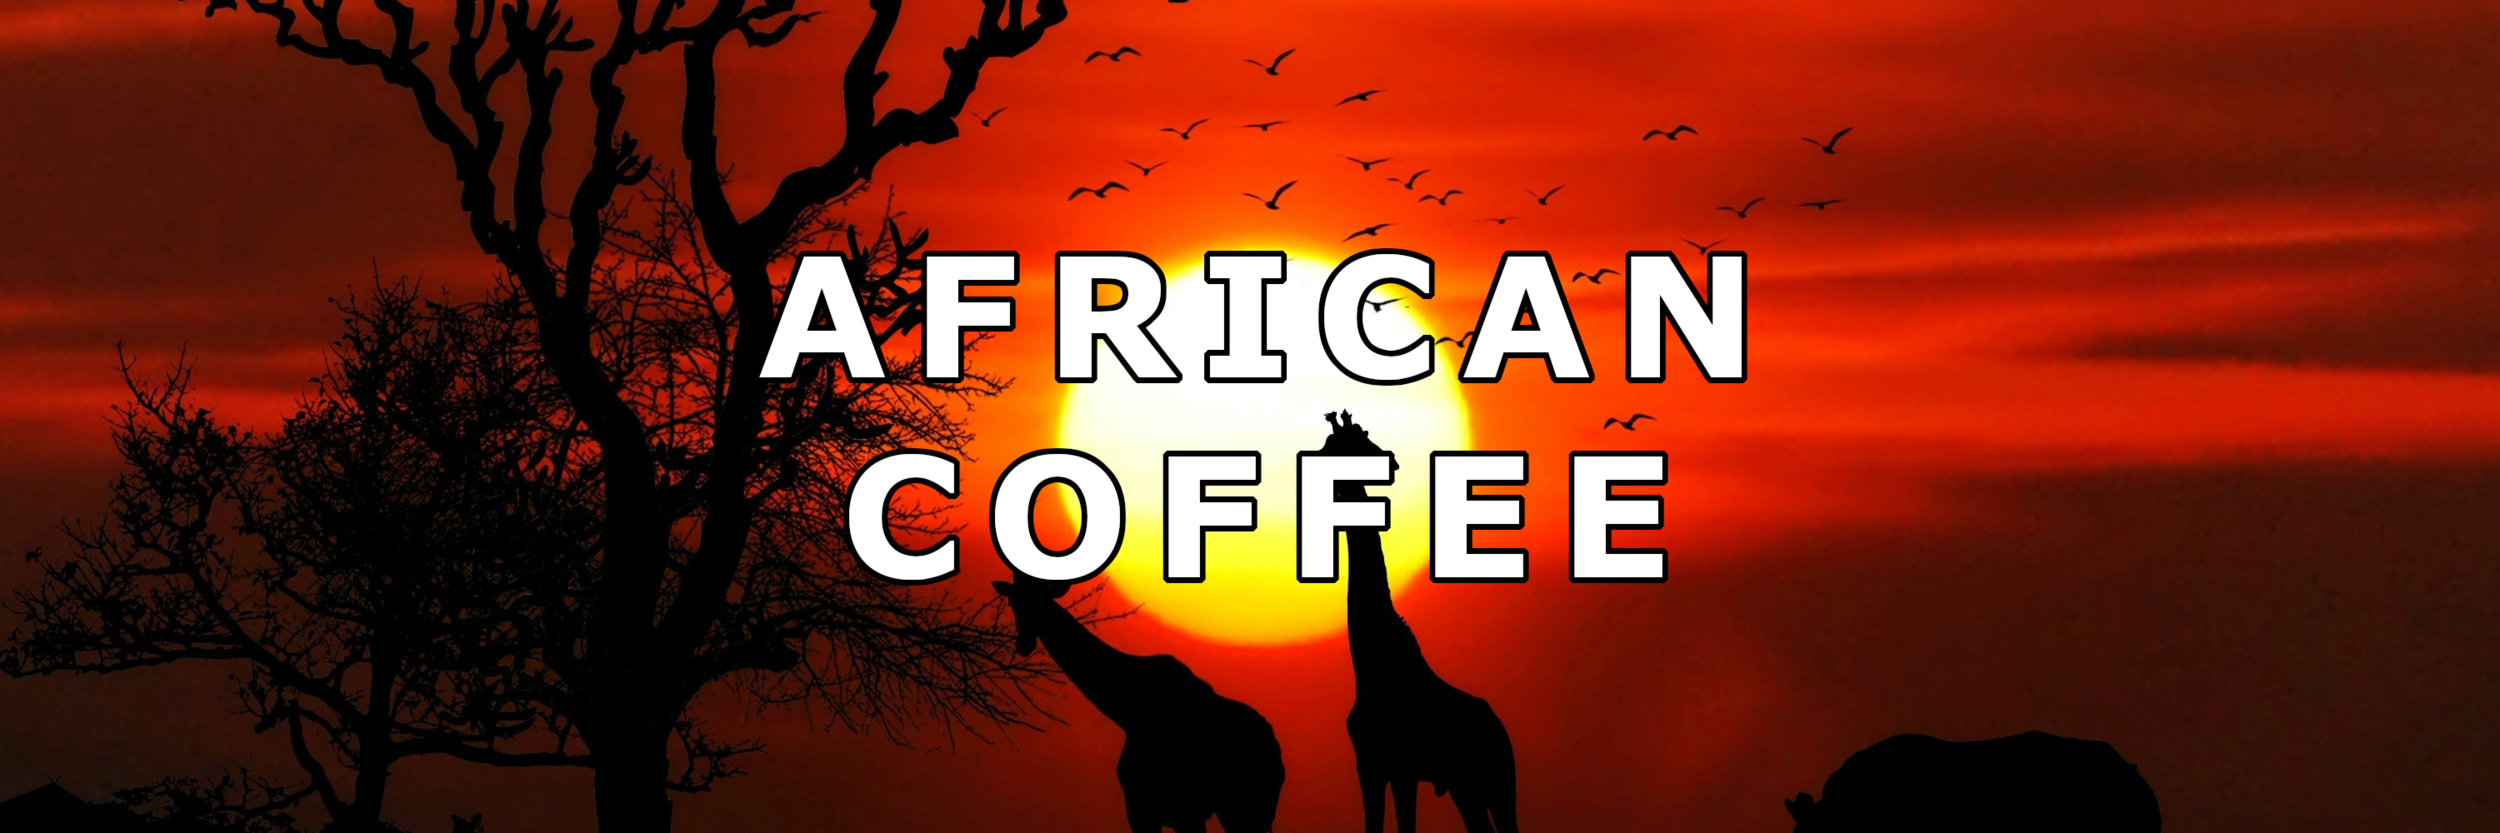 african_coffee2.png